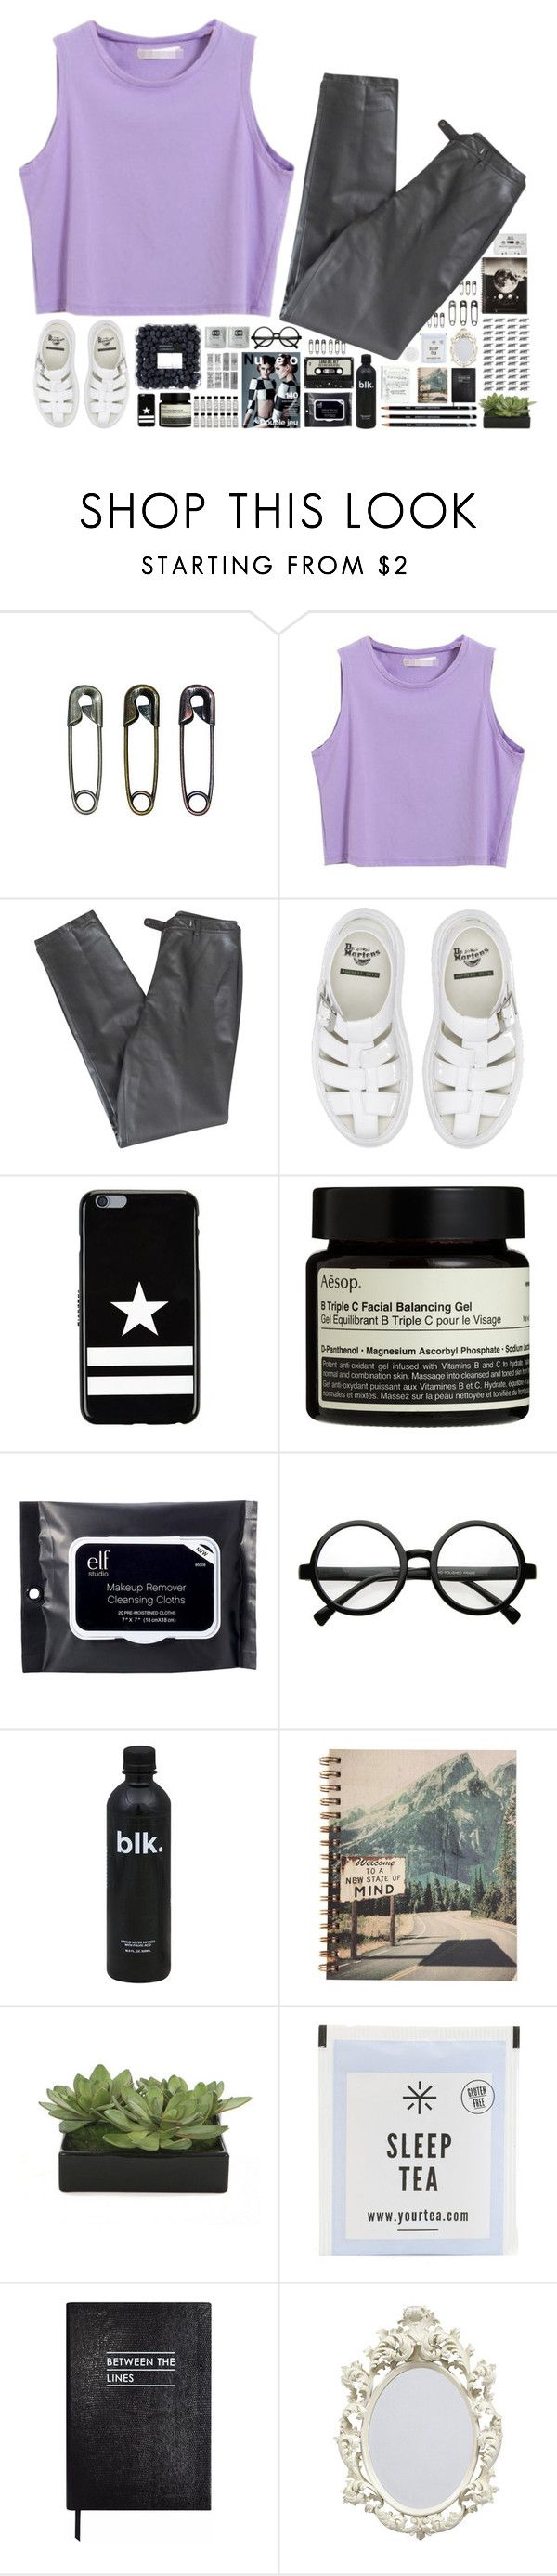 """""""Gravity don't mean too much to me"""" by spottdrossel ❤ liked on Polyvore featuring Tim Holtz, Lafayette 148 New York, Dr. Martens, Givenchy, Aesop, e.l.f., Retrò, Lux-Art Silks and Sloane Stationery"""